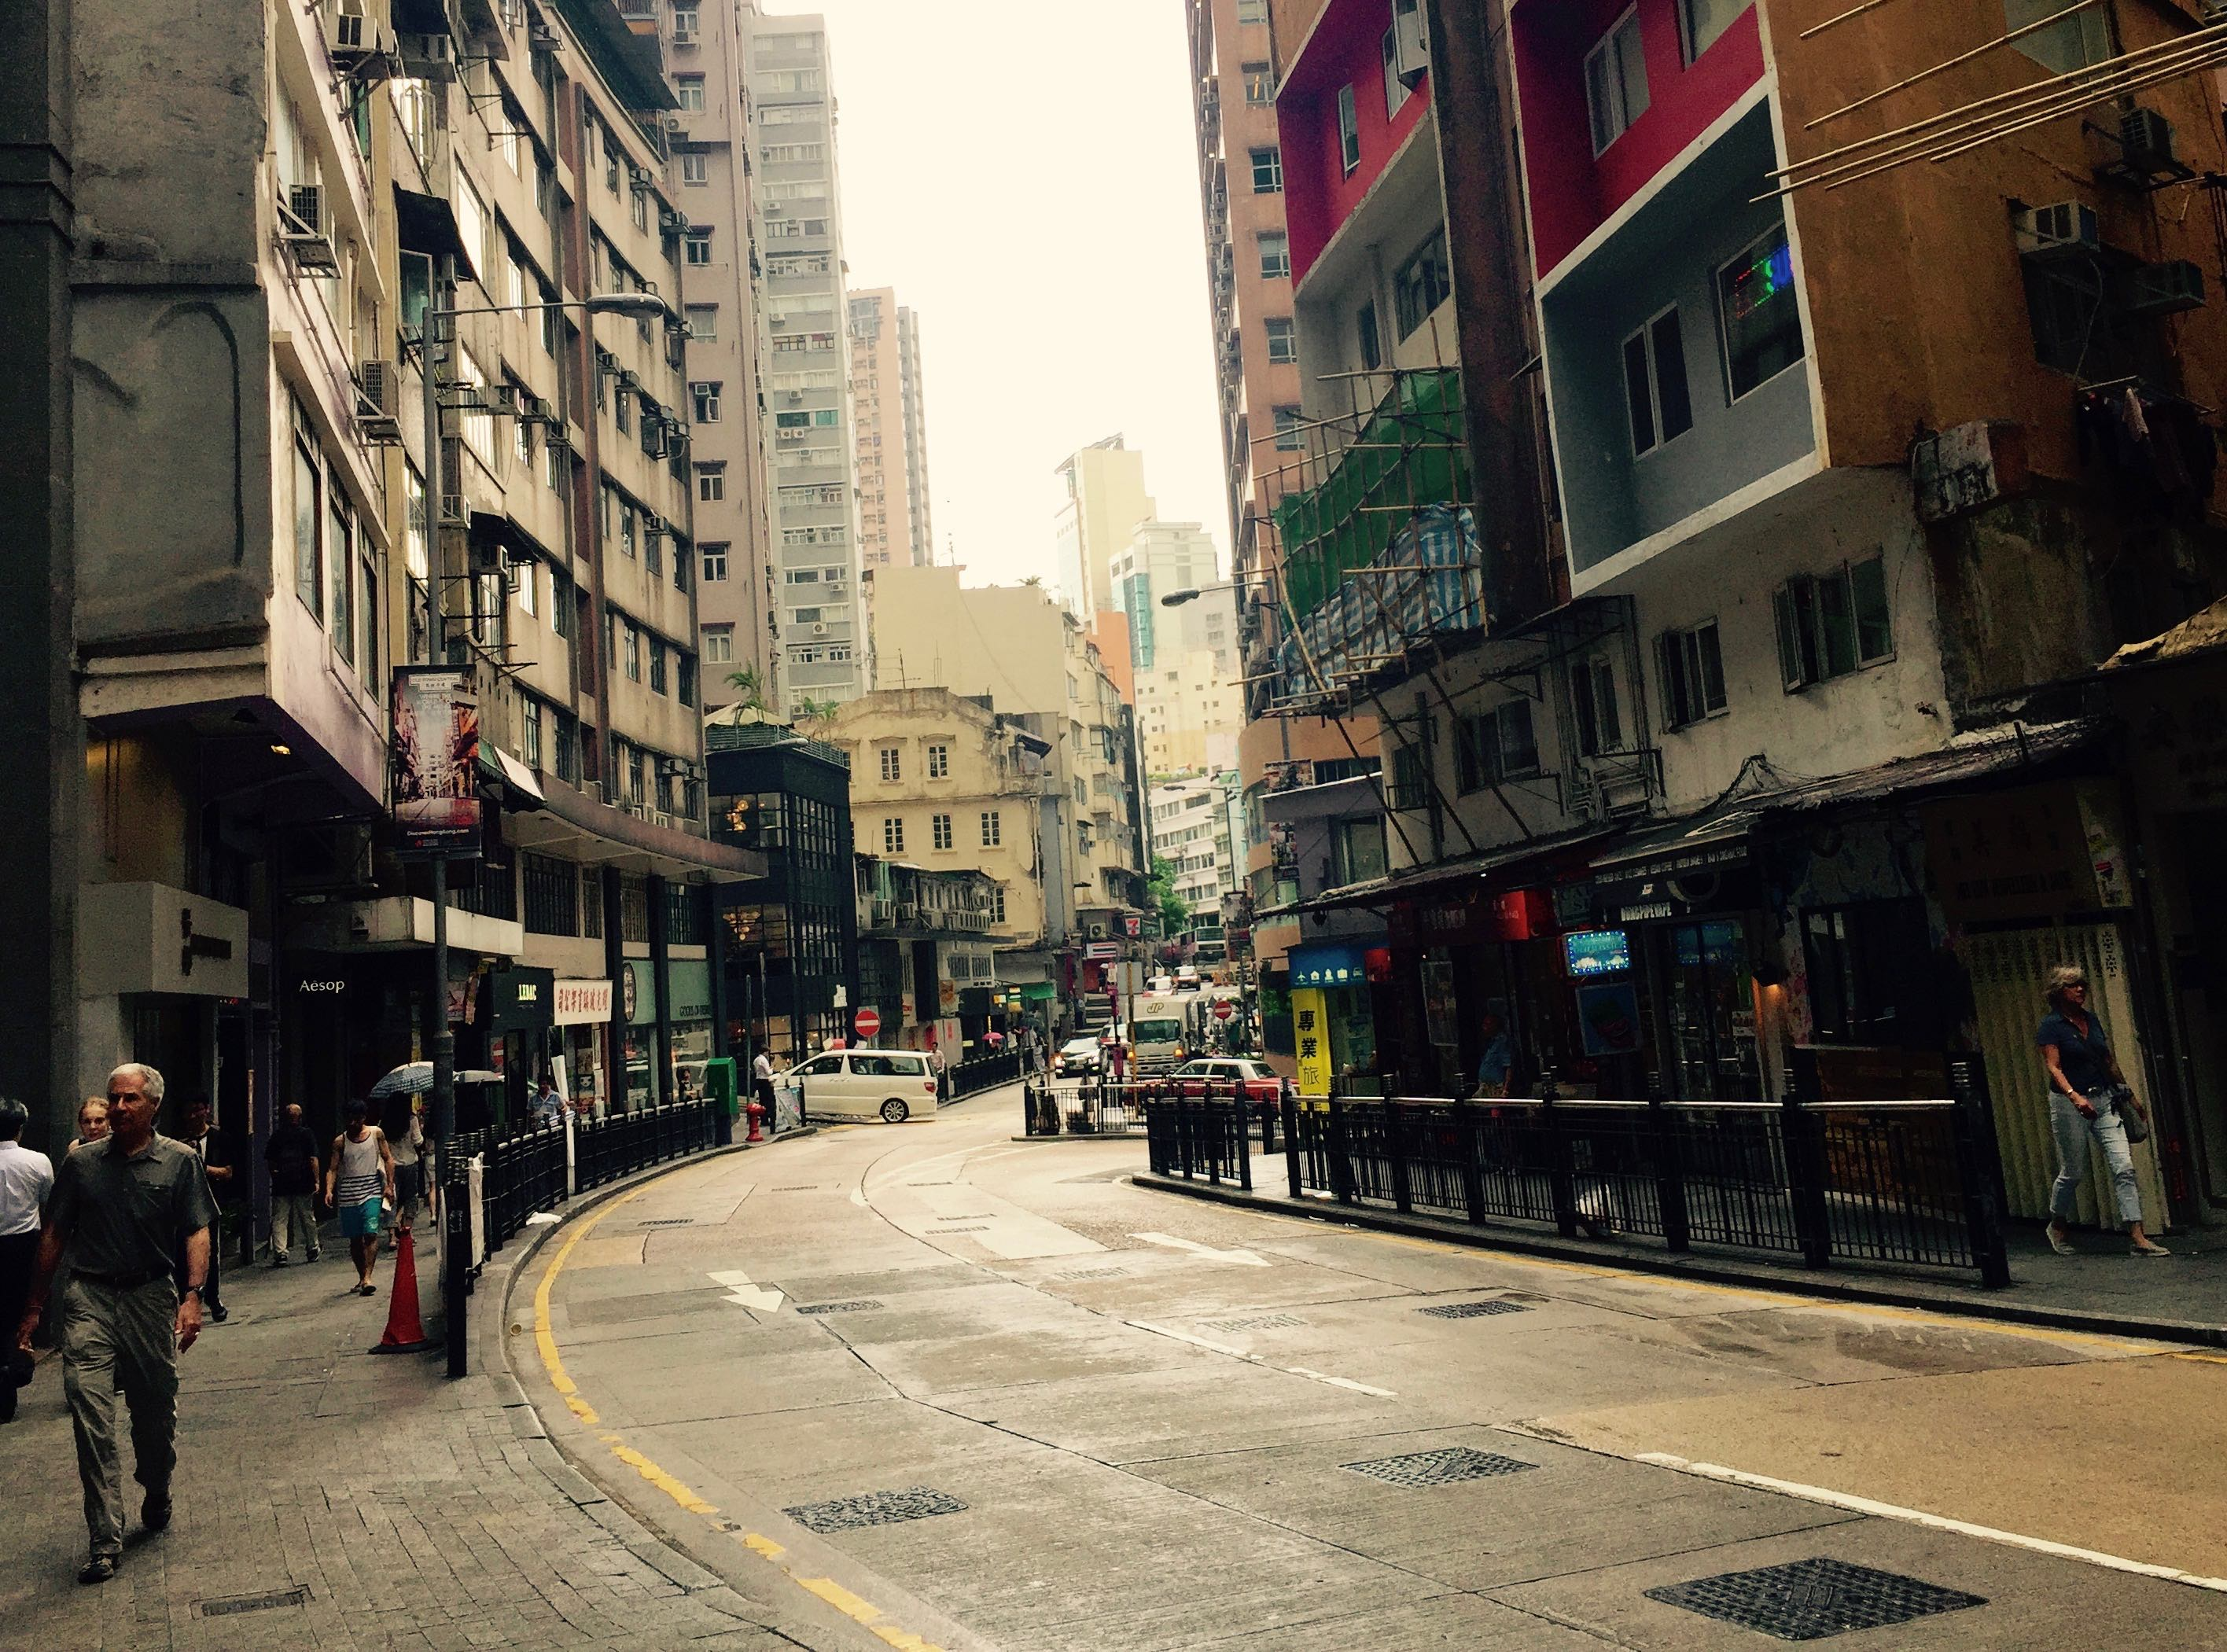 Hollywood Road Central extending from core CBD Hong Kong to Sheung Wan